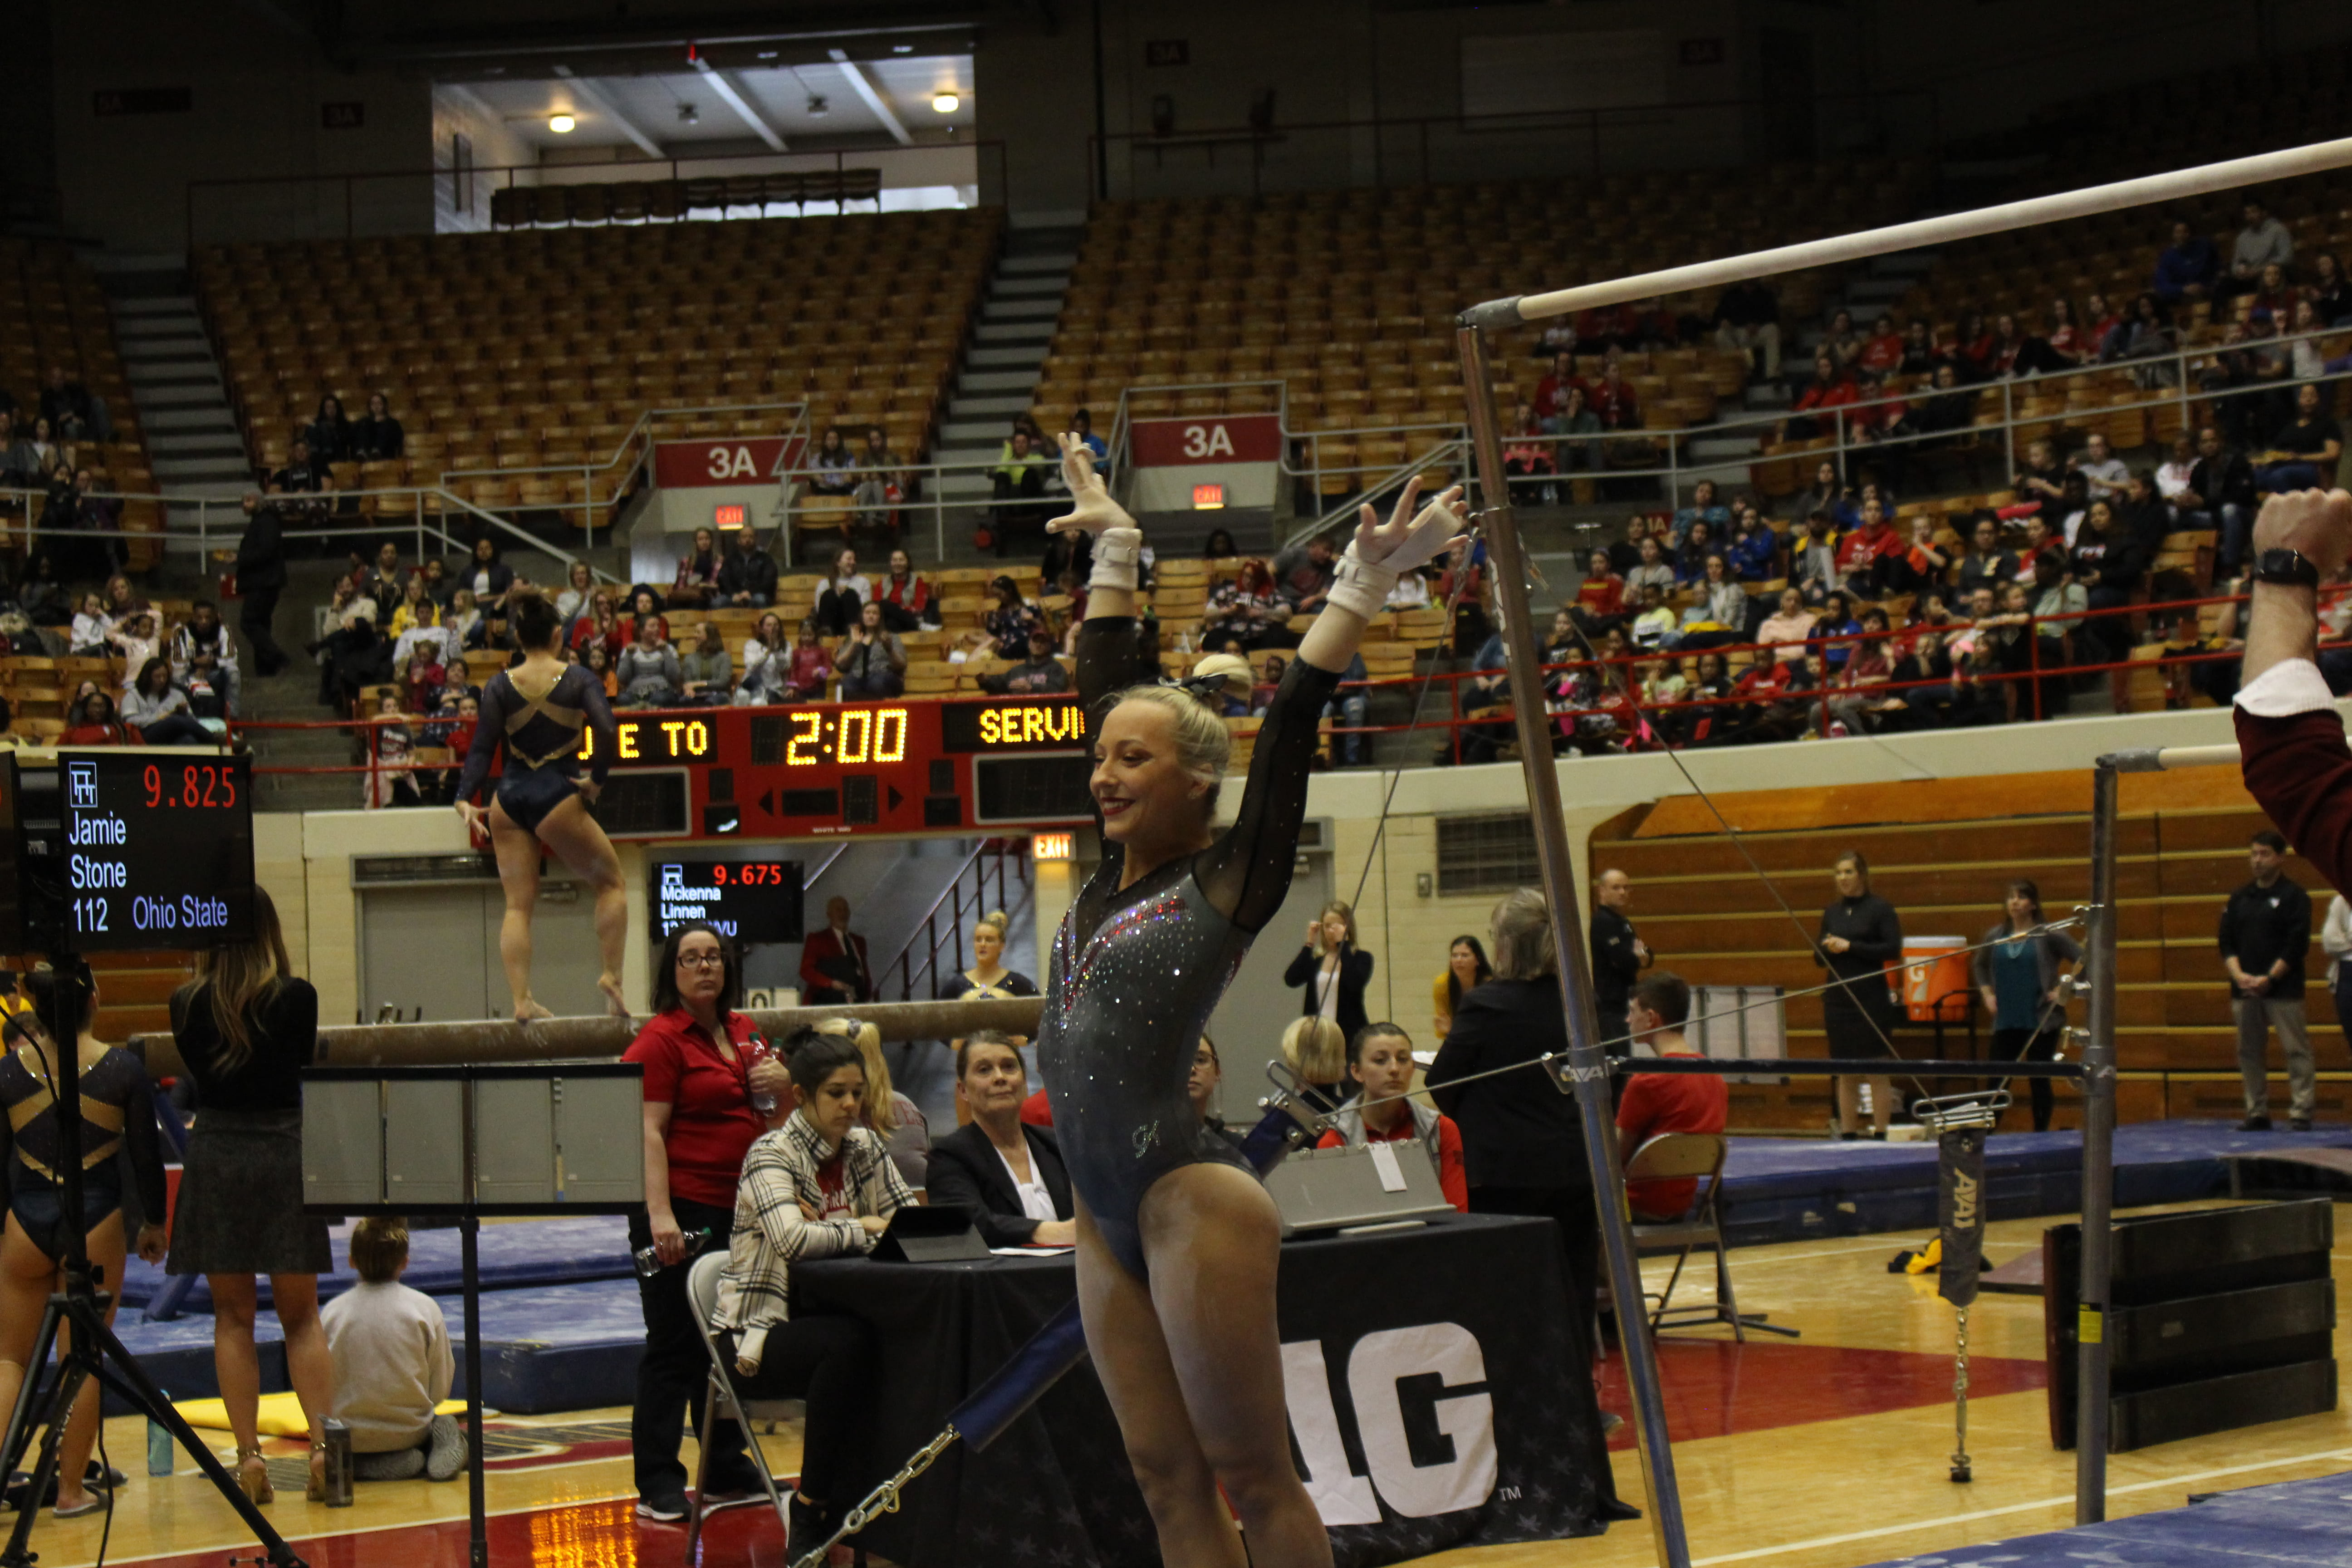 Women's Gymnastics: Team invites fans, friends and family to watch practice  – The Lantern